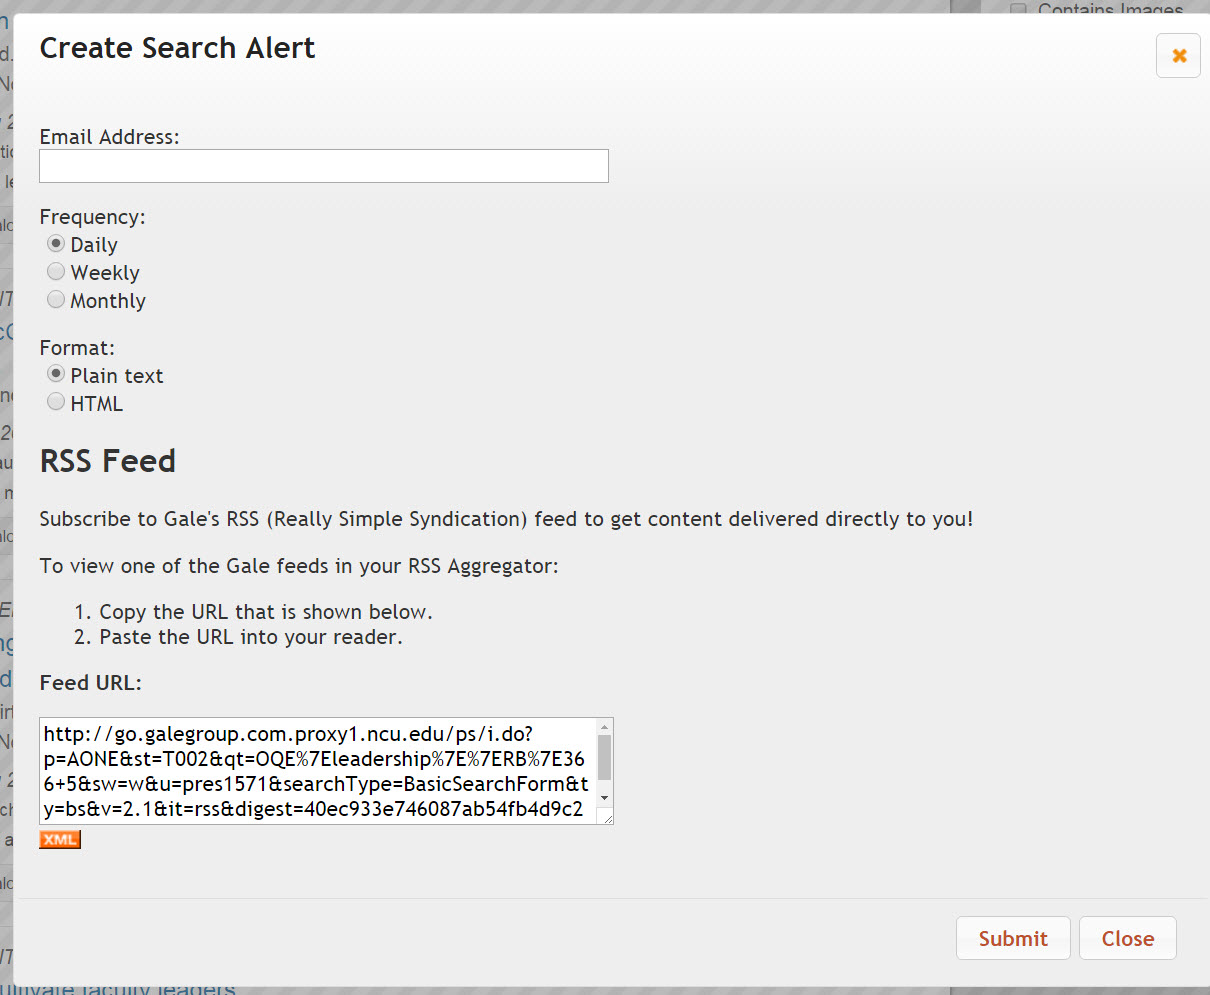 Films on Demand Create Search Alert screen.